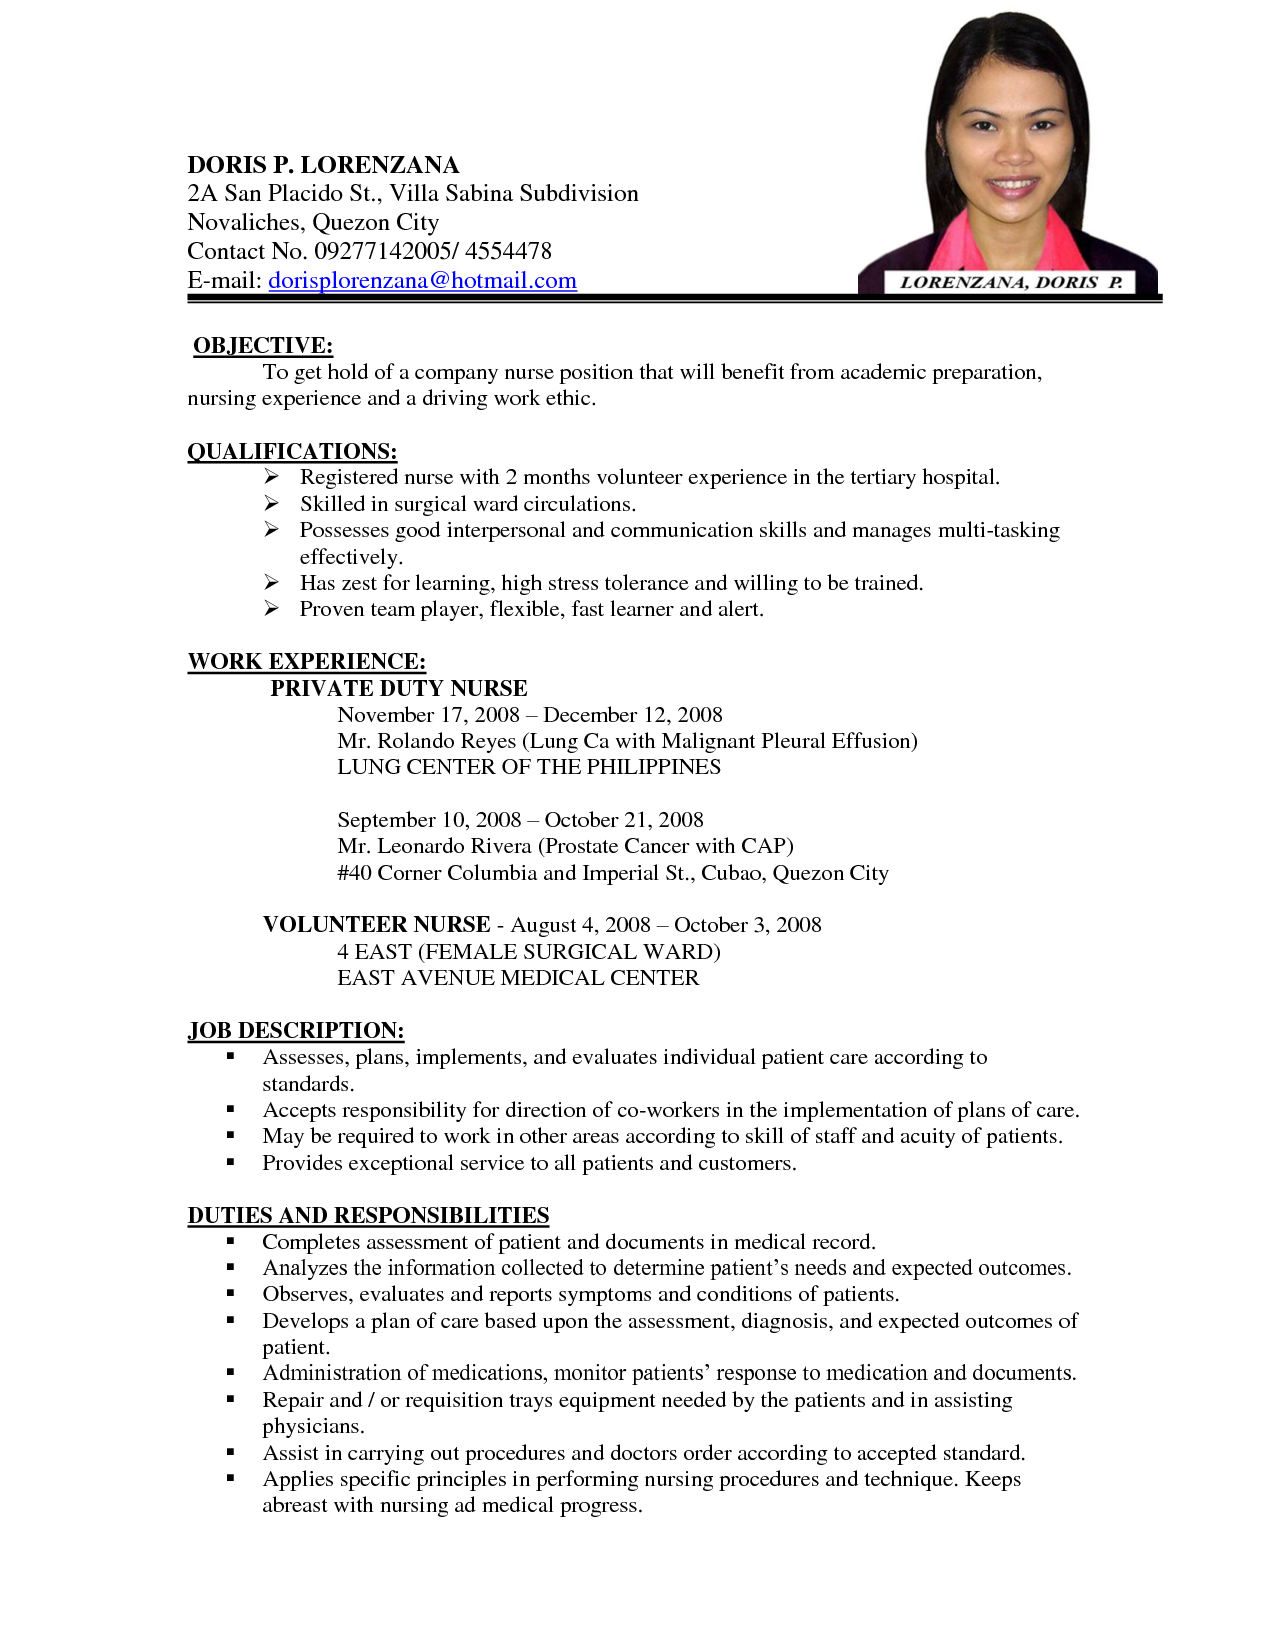 Nurses Resume Format Samples Nursing Curriculum Vitae Examples Google Search